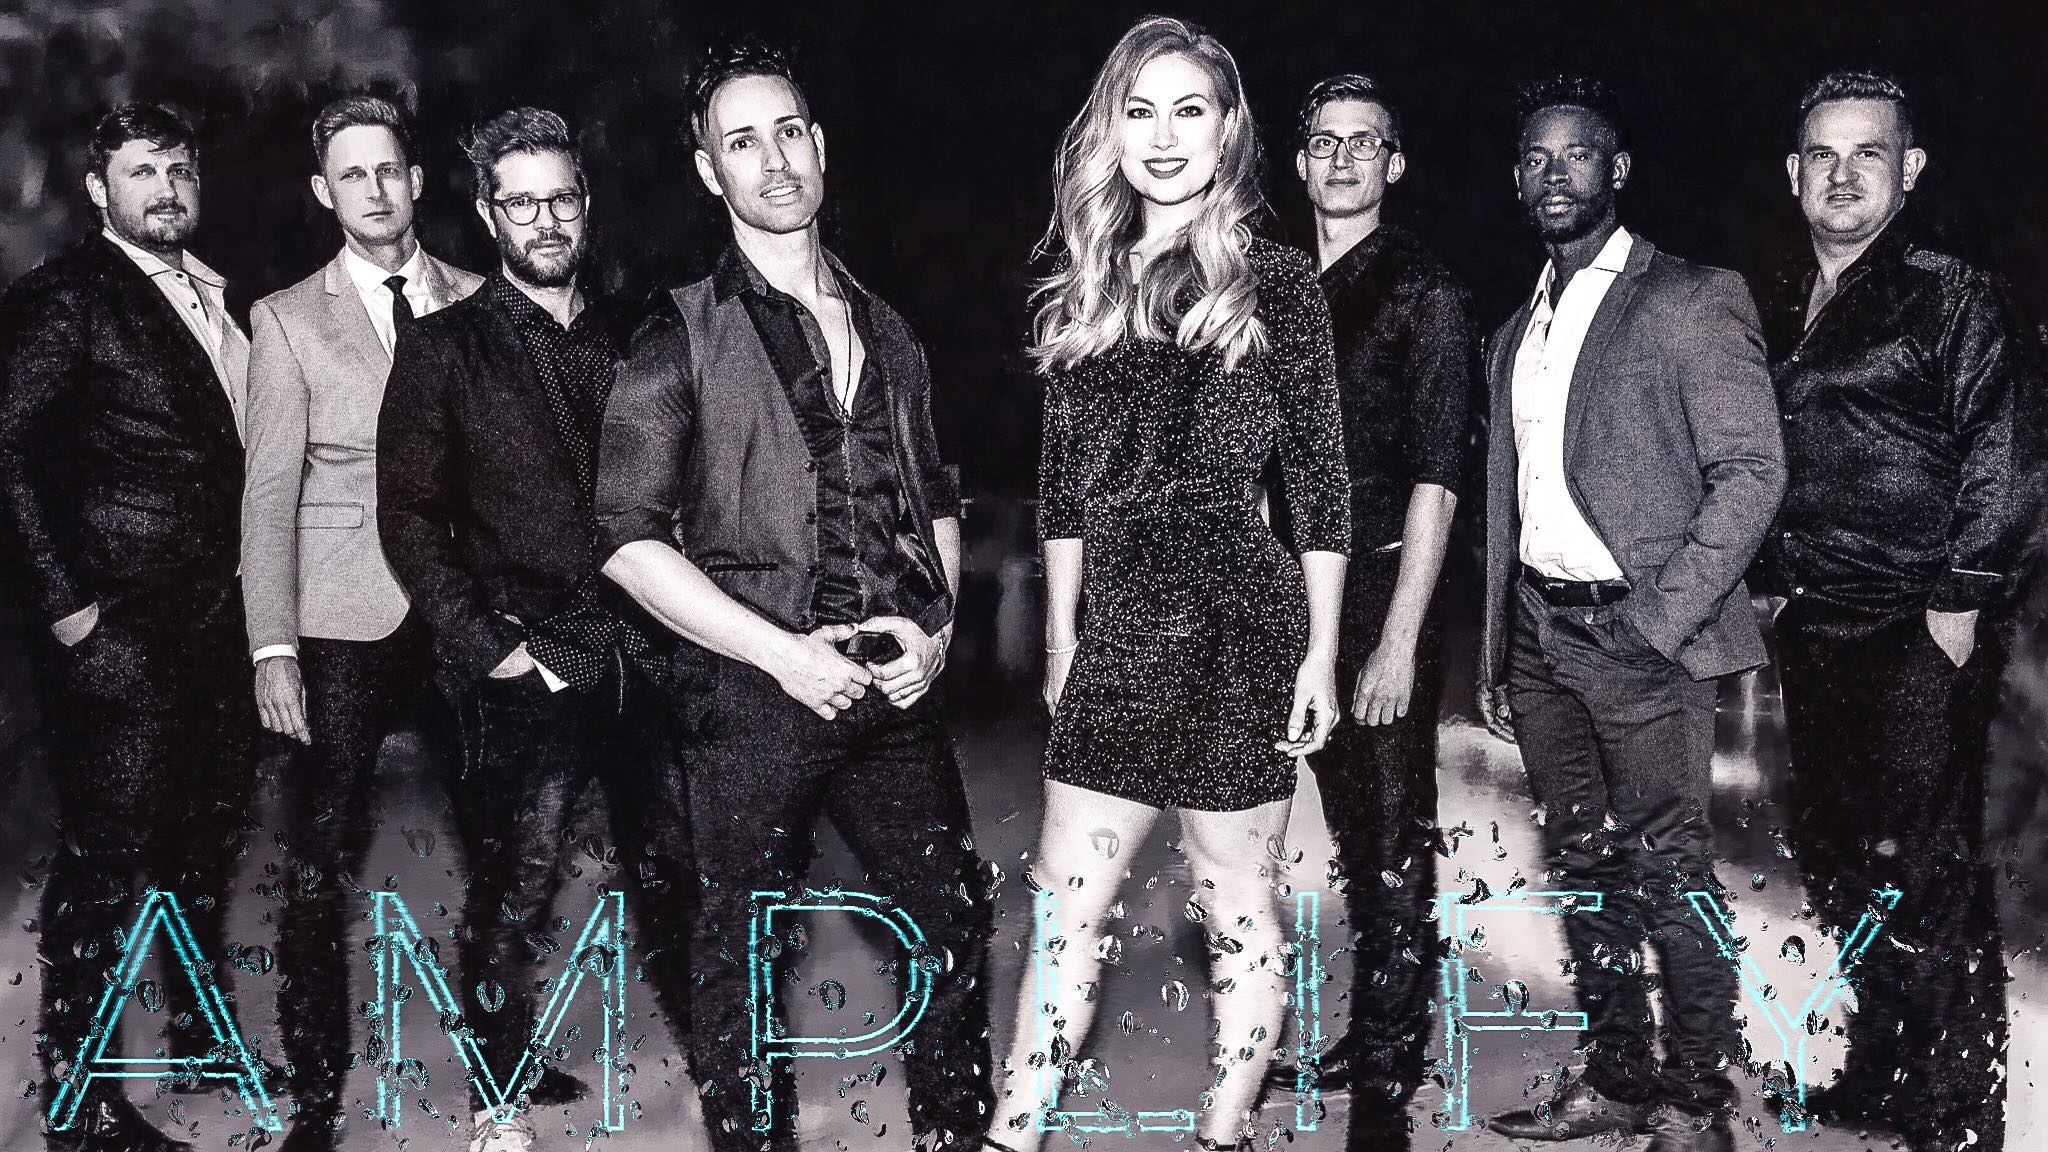 LIVE PARTY BAND - Amplify's directive is one of'dynamic entertainment' - from 'dinner-to-dance', so no matter the size of your event engaging you and your guests , creating energy, vibe and an electric atmosphere will be our success.